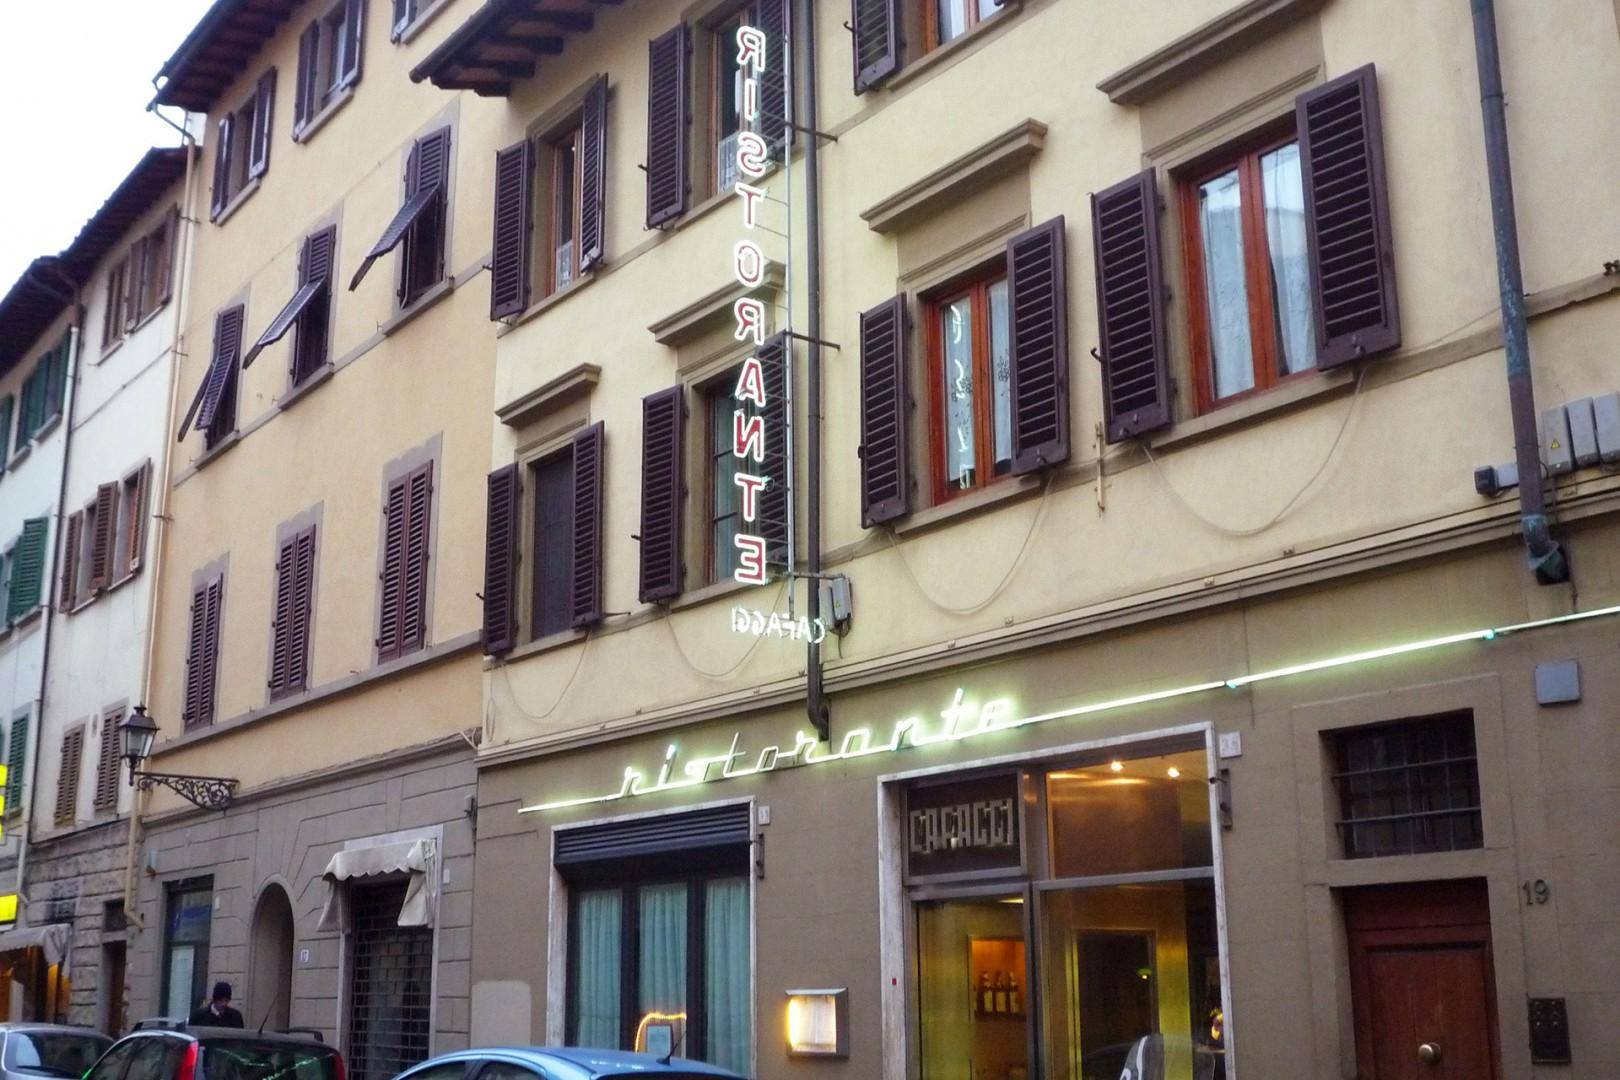 Down the block from the apartment is Ristorante Caffaggi, with Florentine specialties.